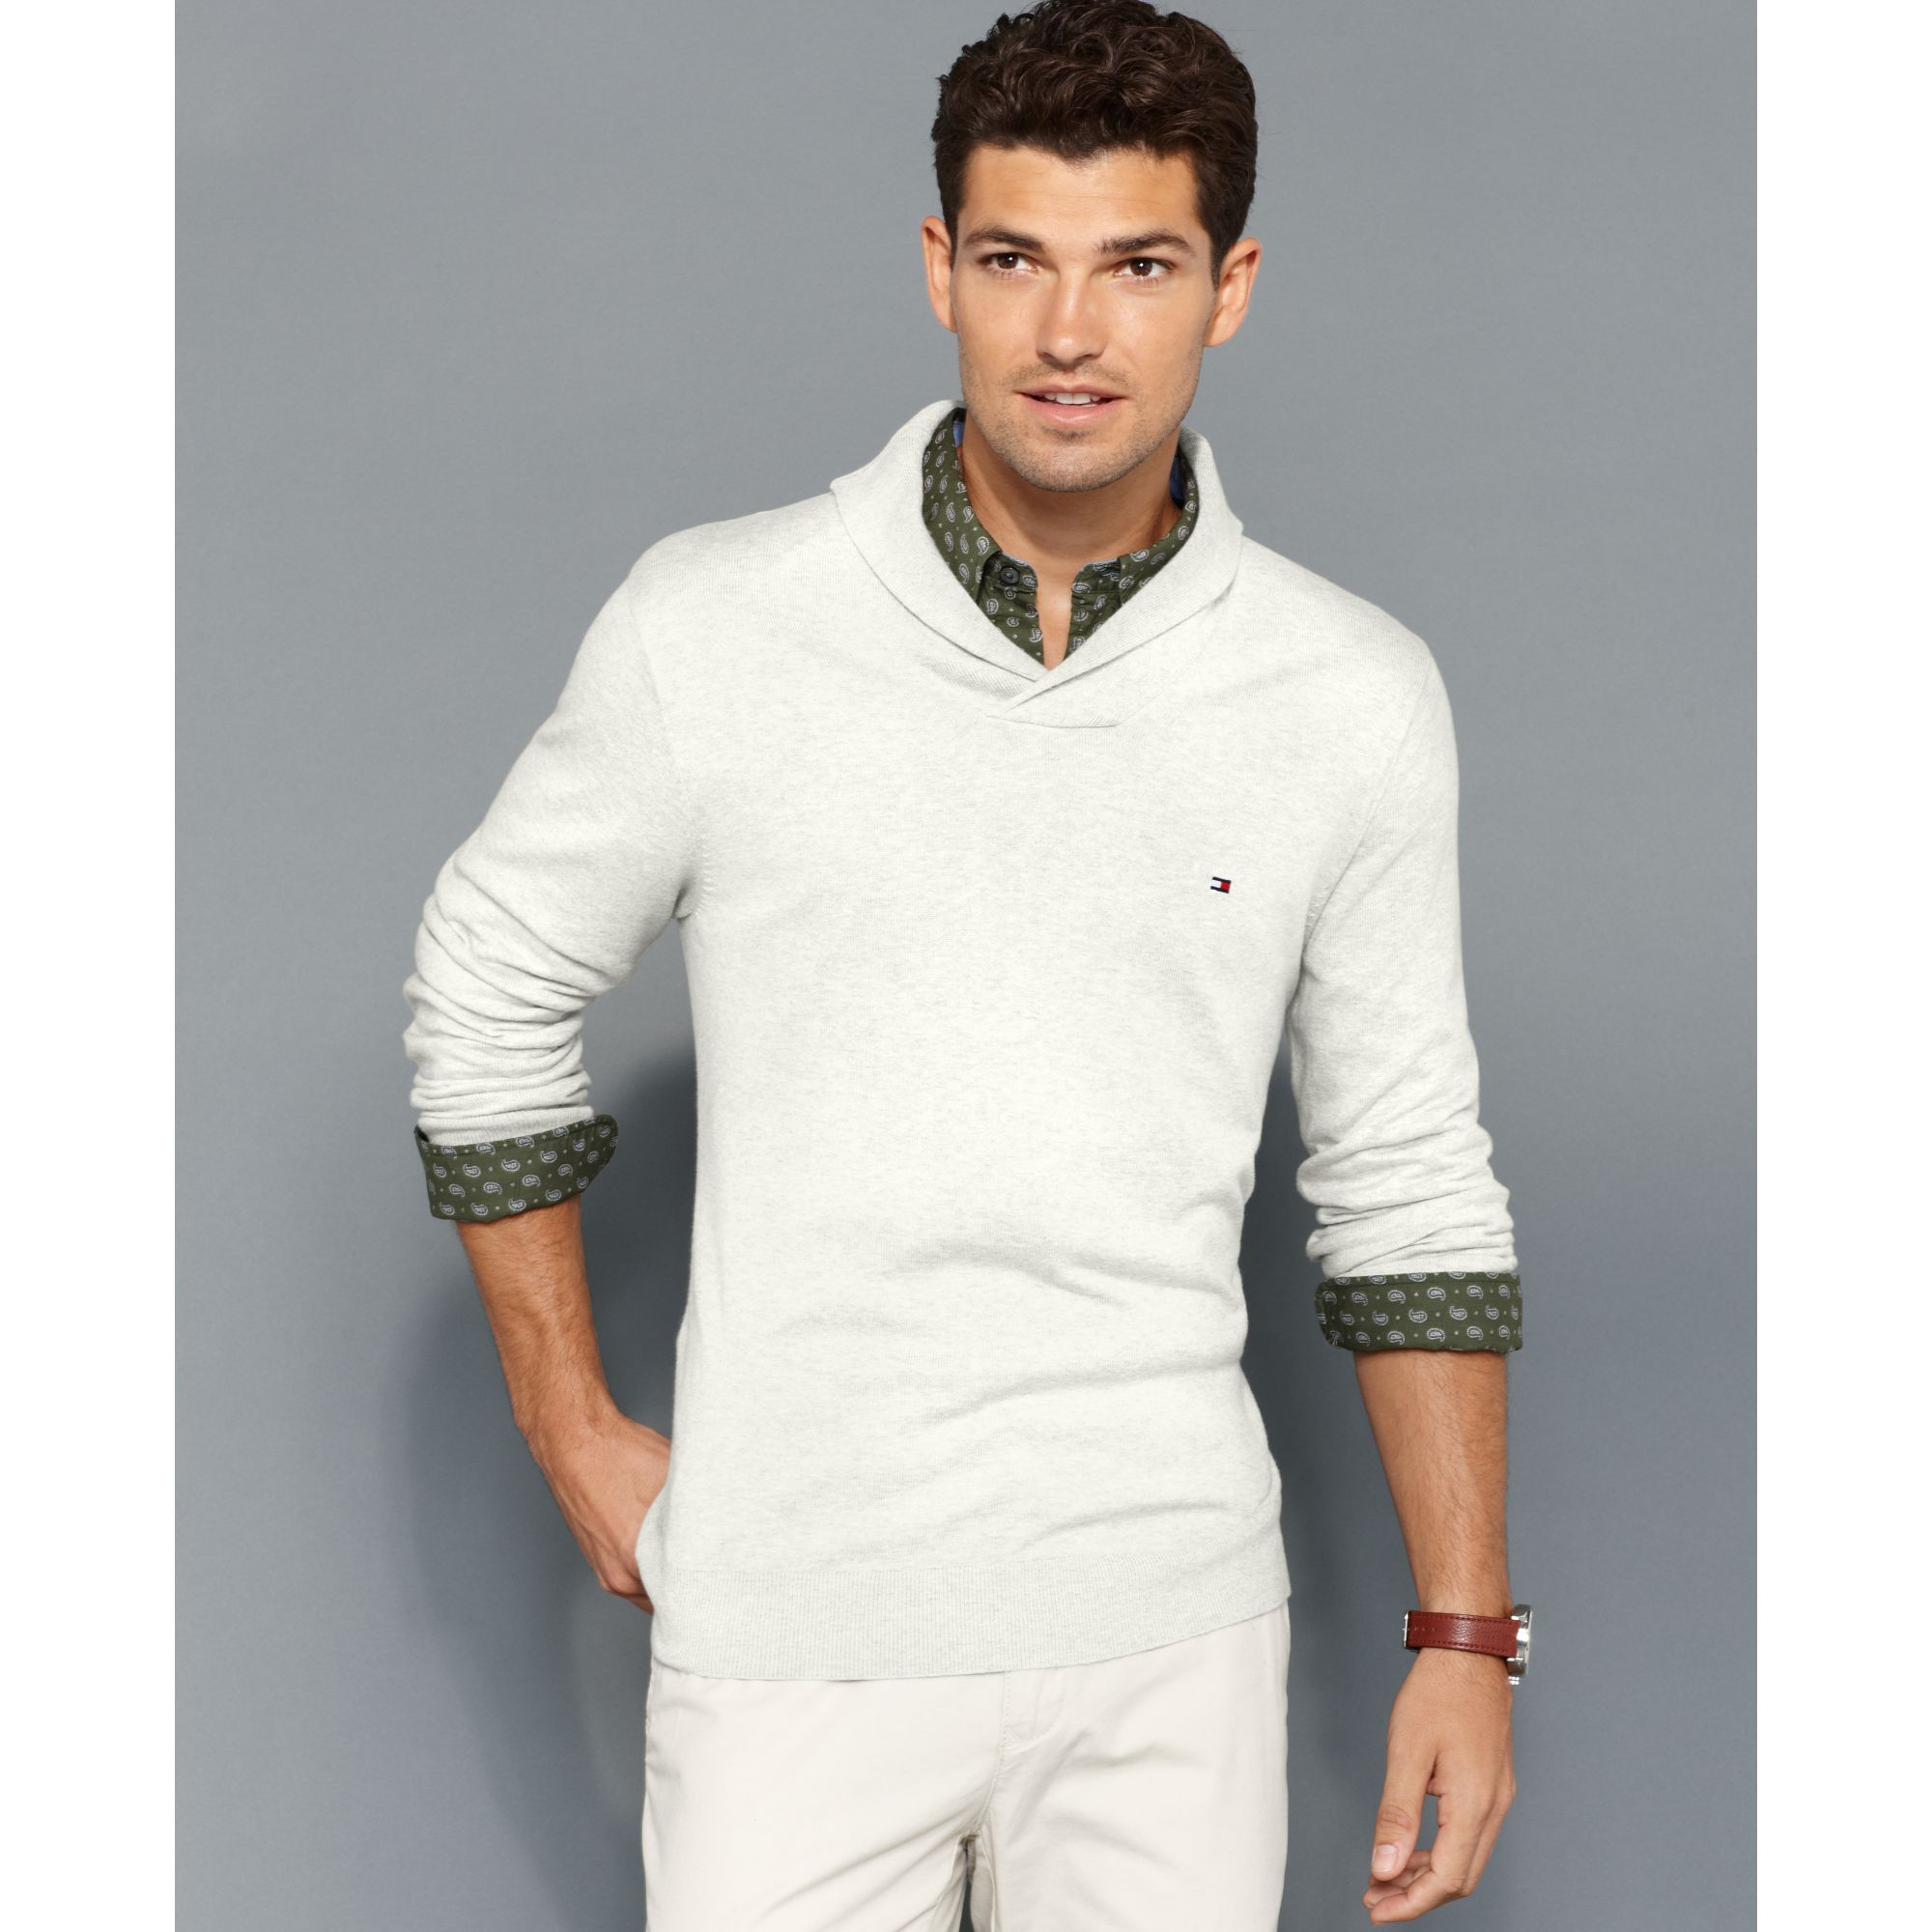 lyst tommy hilfiger american shawl collar sweater in white for men. Black Bedroom Furniture Sets. Home Design Ideas